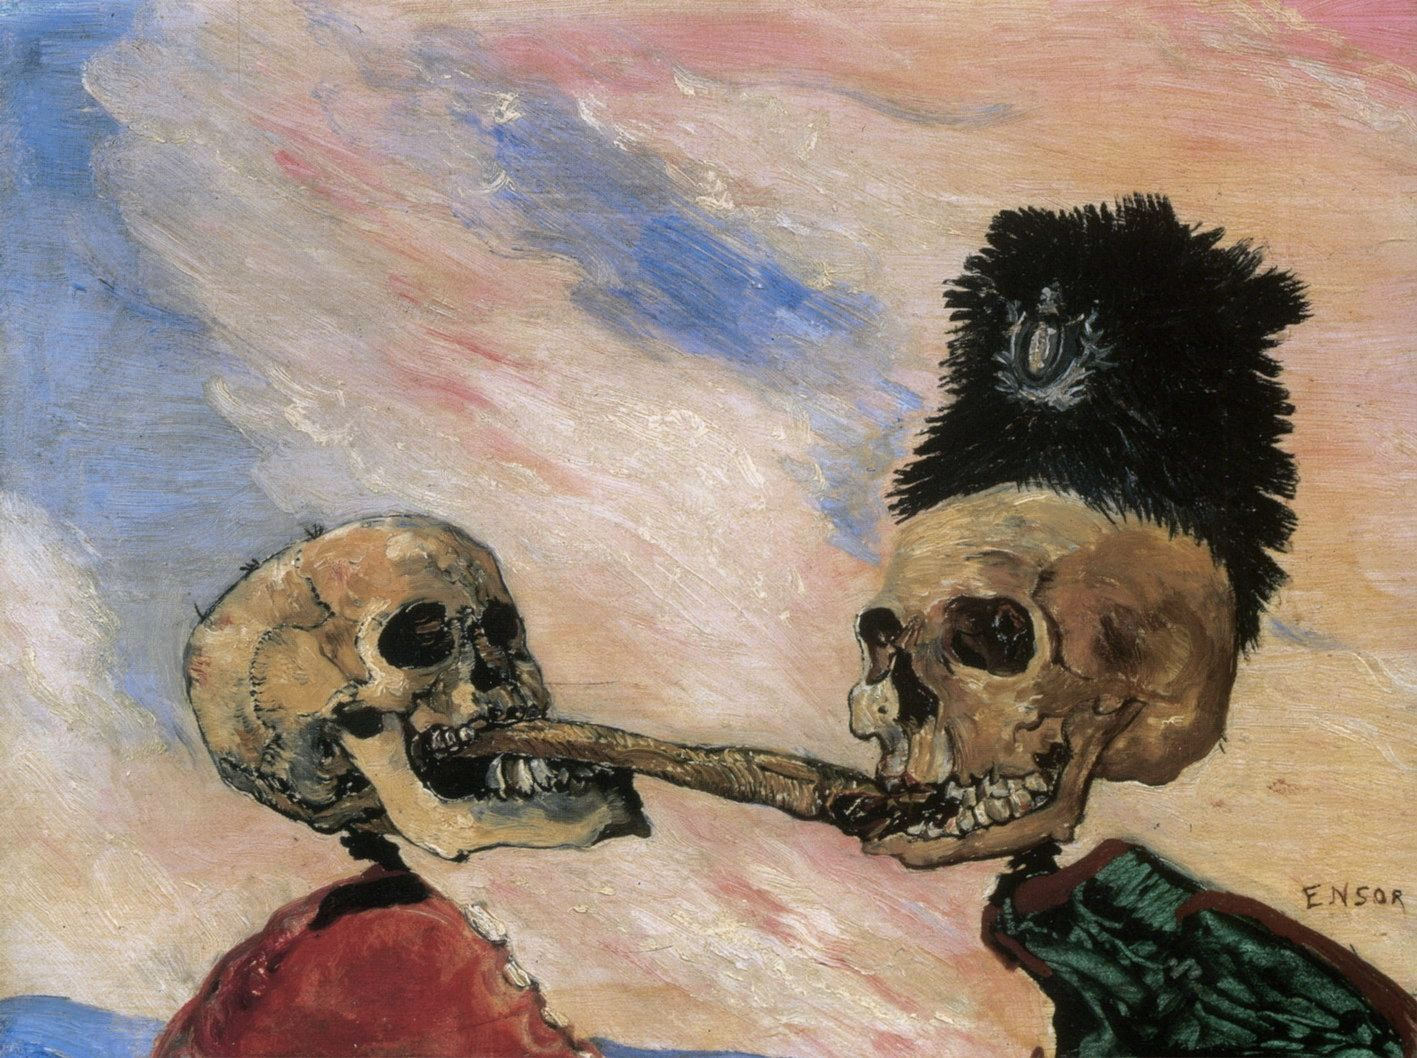 Figura 6. James Ensor. Esqueletos disputando um arenque fumado. 1891